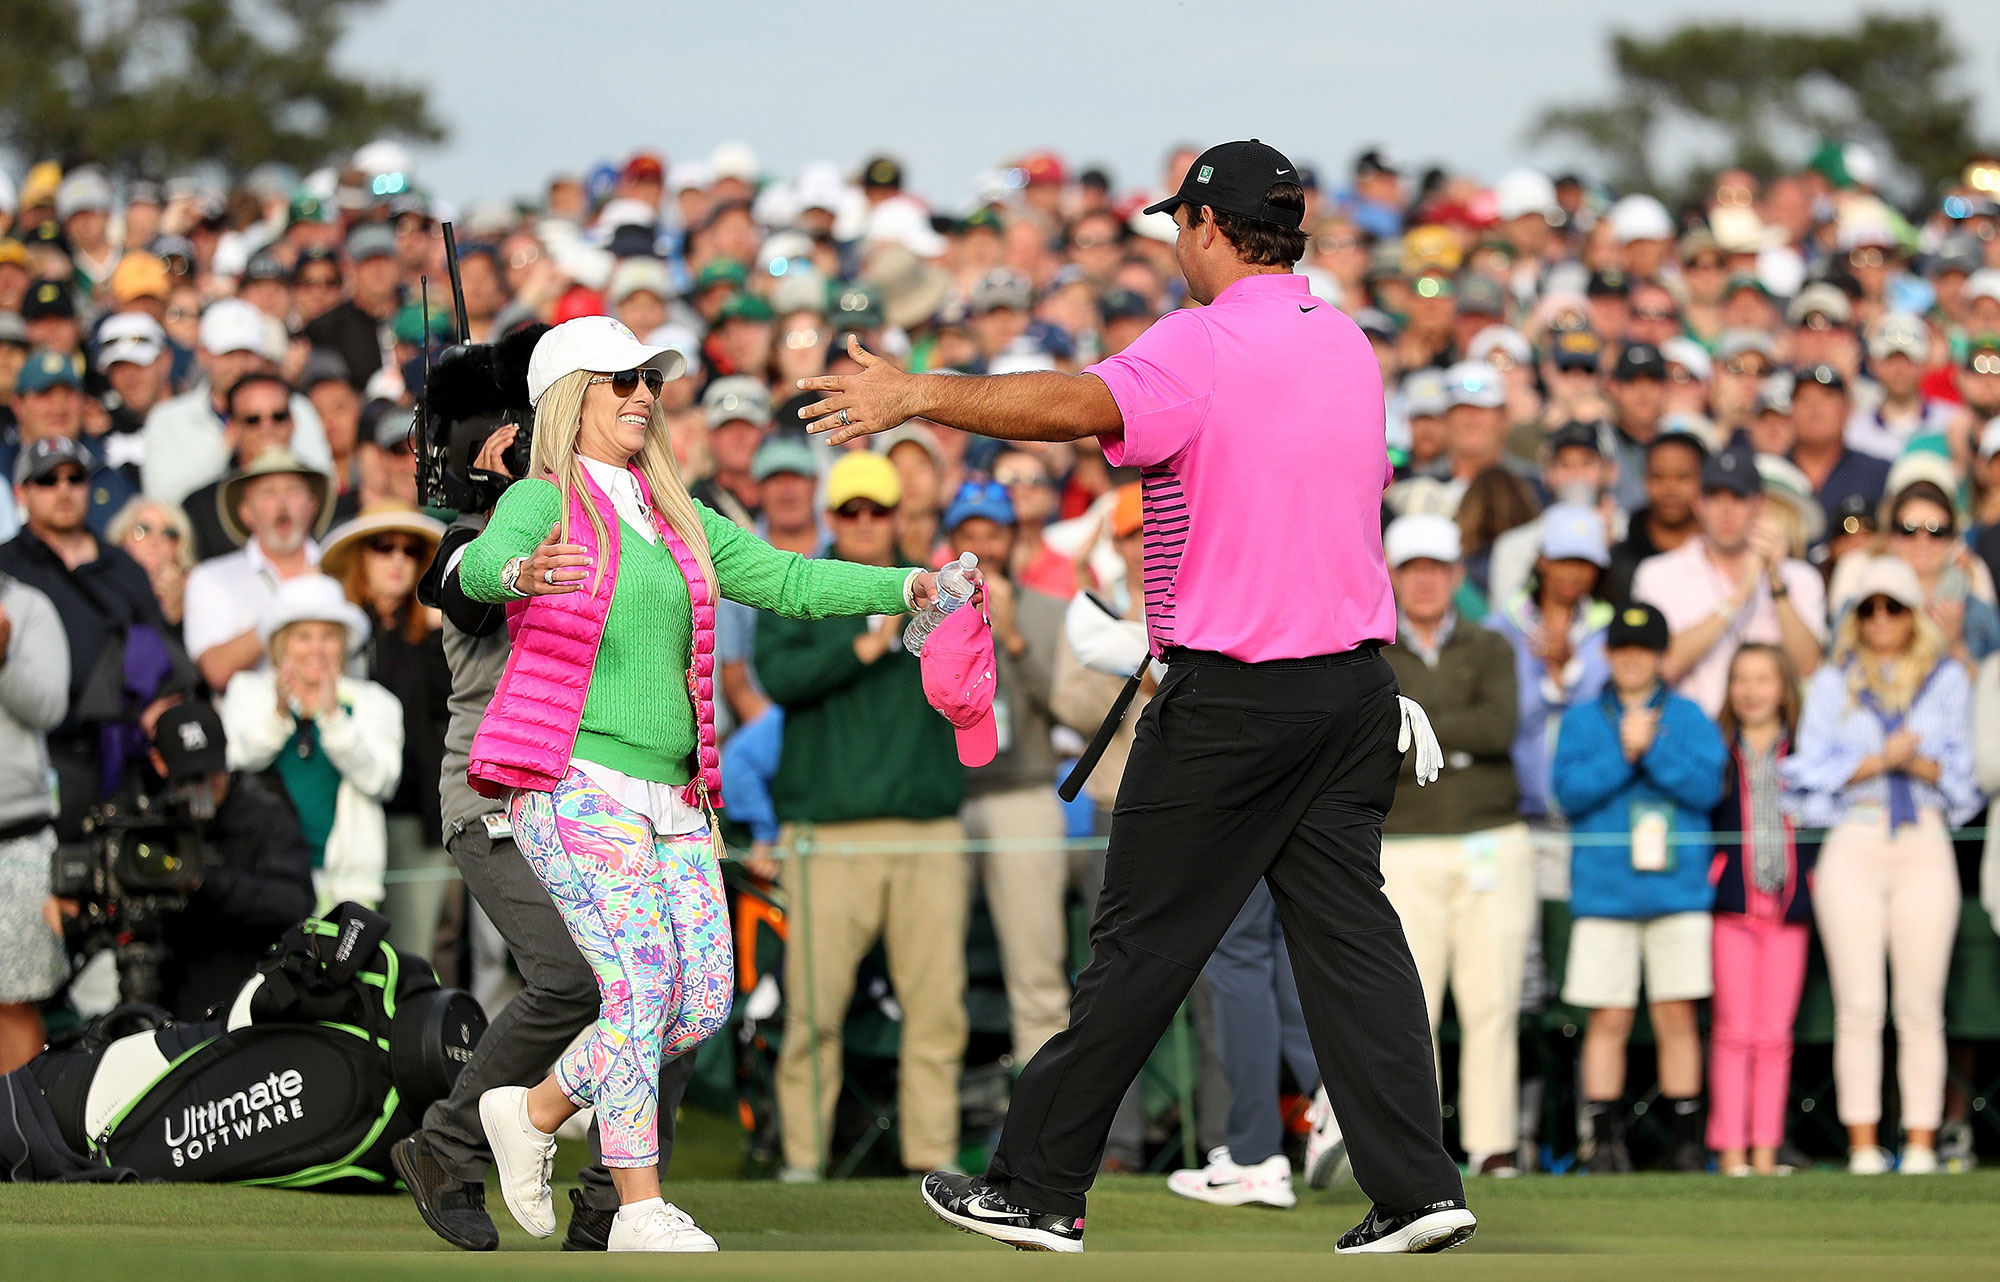 Patrick Reed May Have Won the Masters, But Wife Justine's Lilly Pulitzer Leggings Won the Day lilly-pulitzer-masters-style